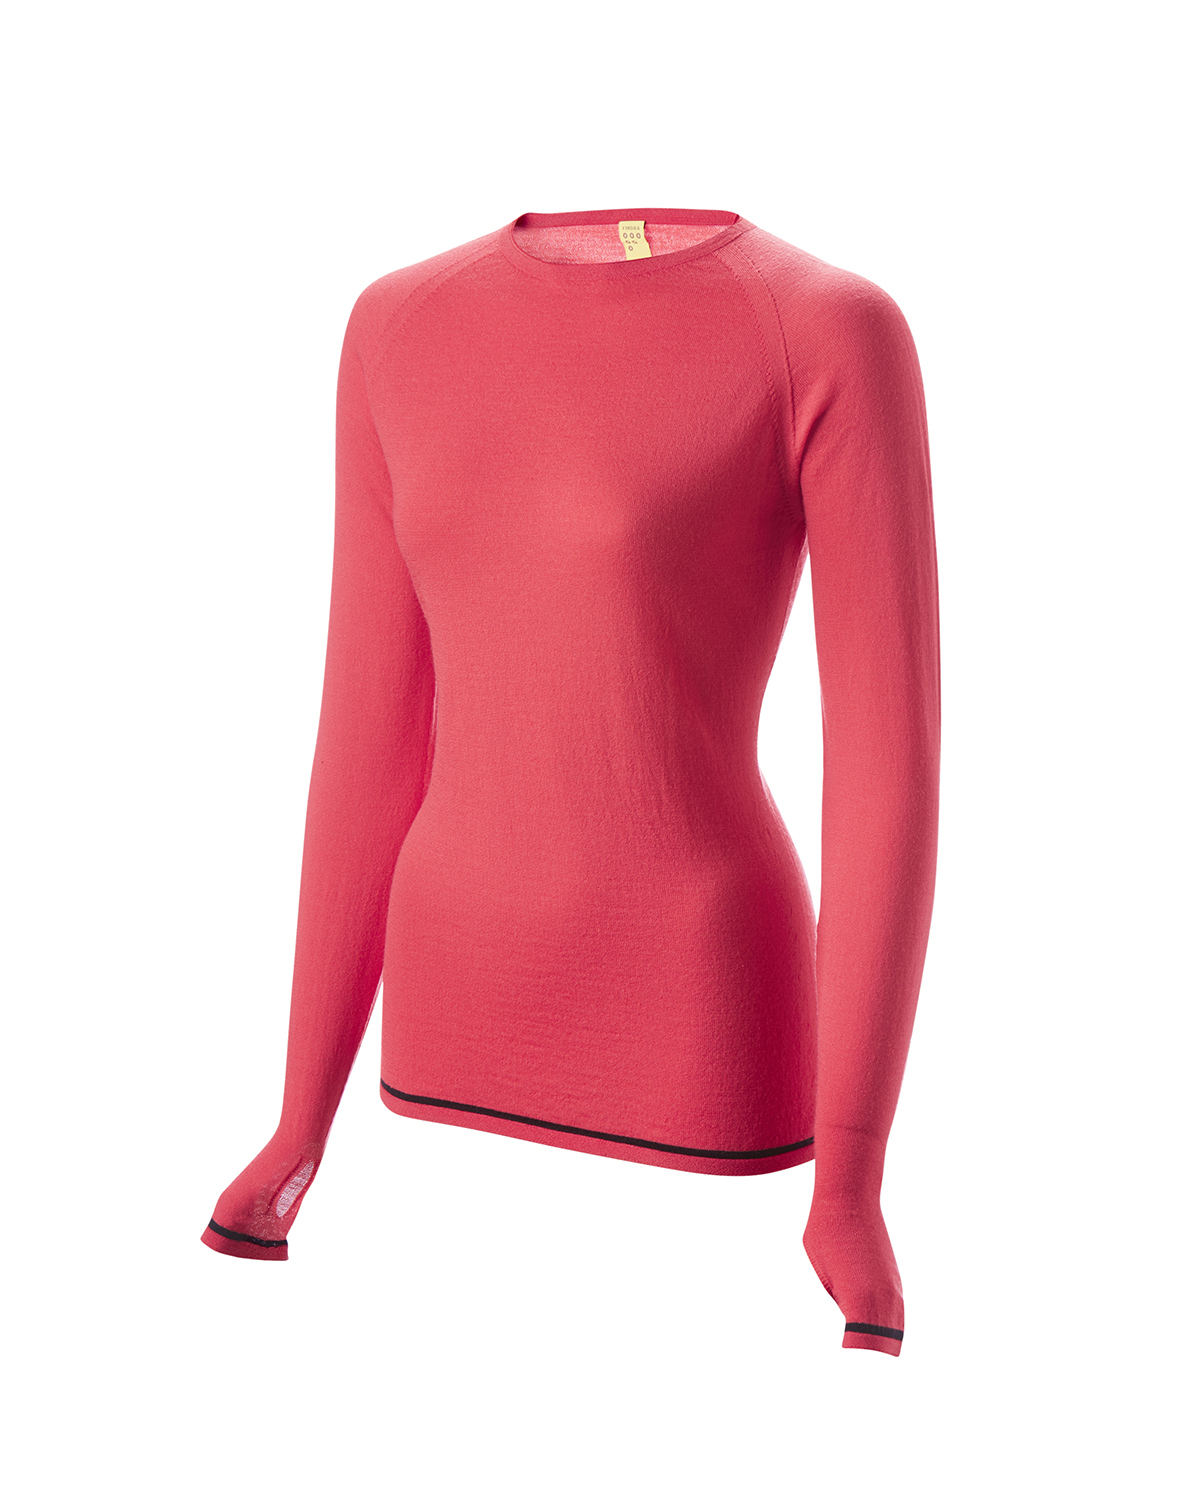 FINDRA Basislag - Dame | Base layers